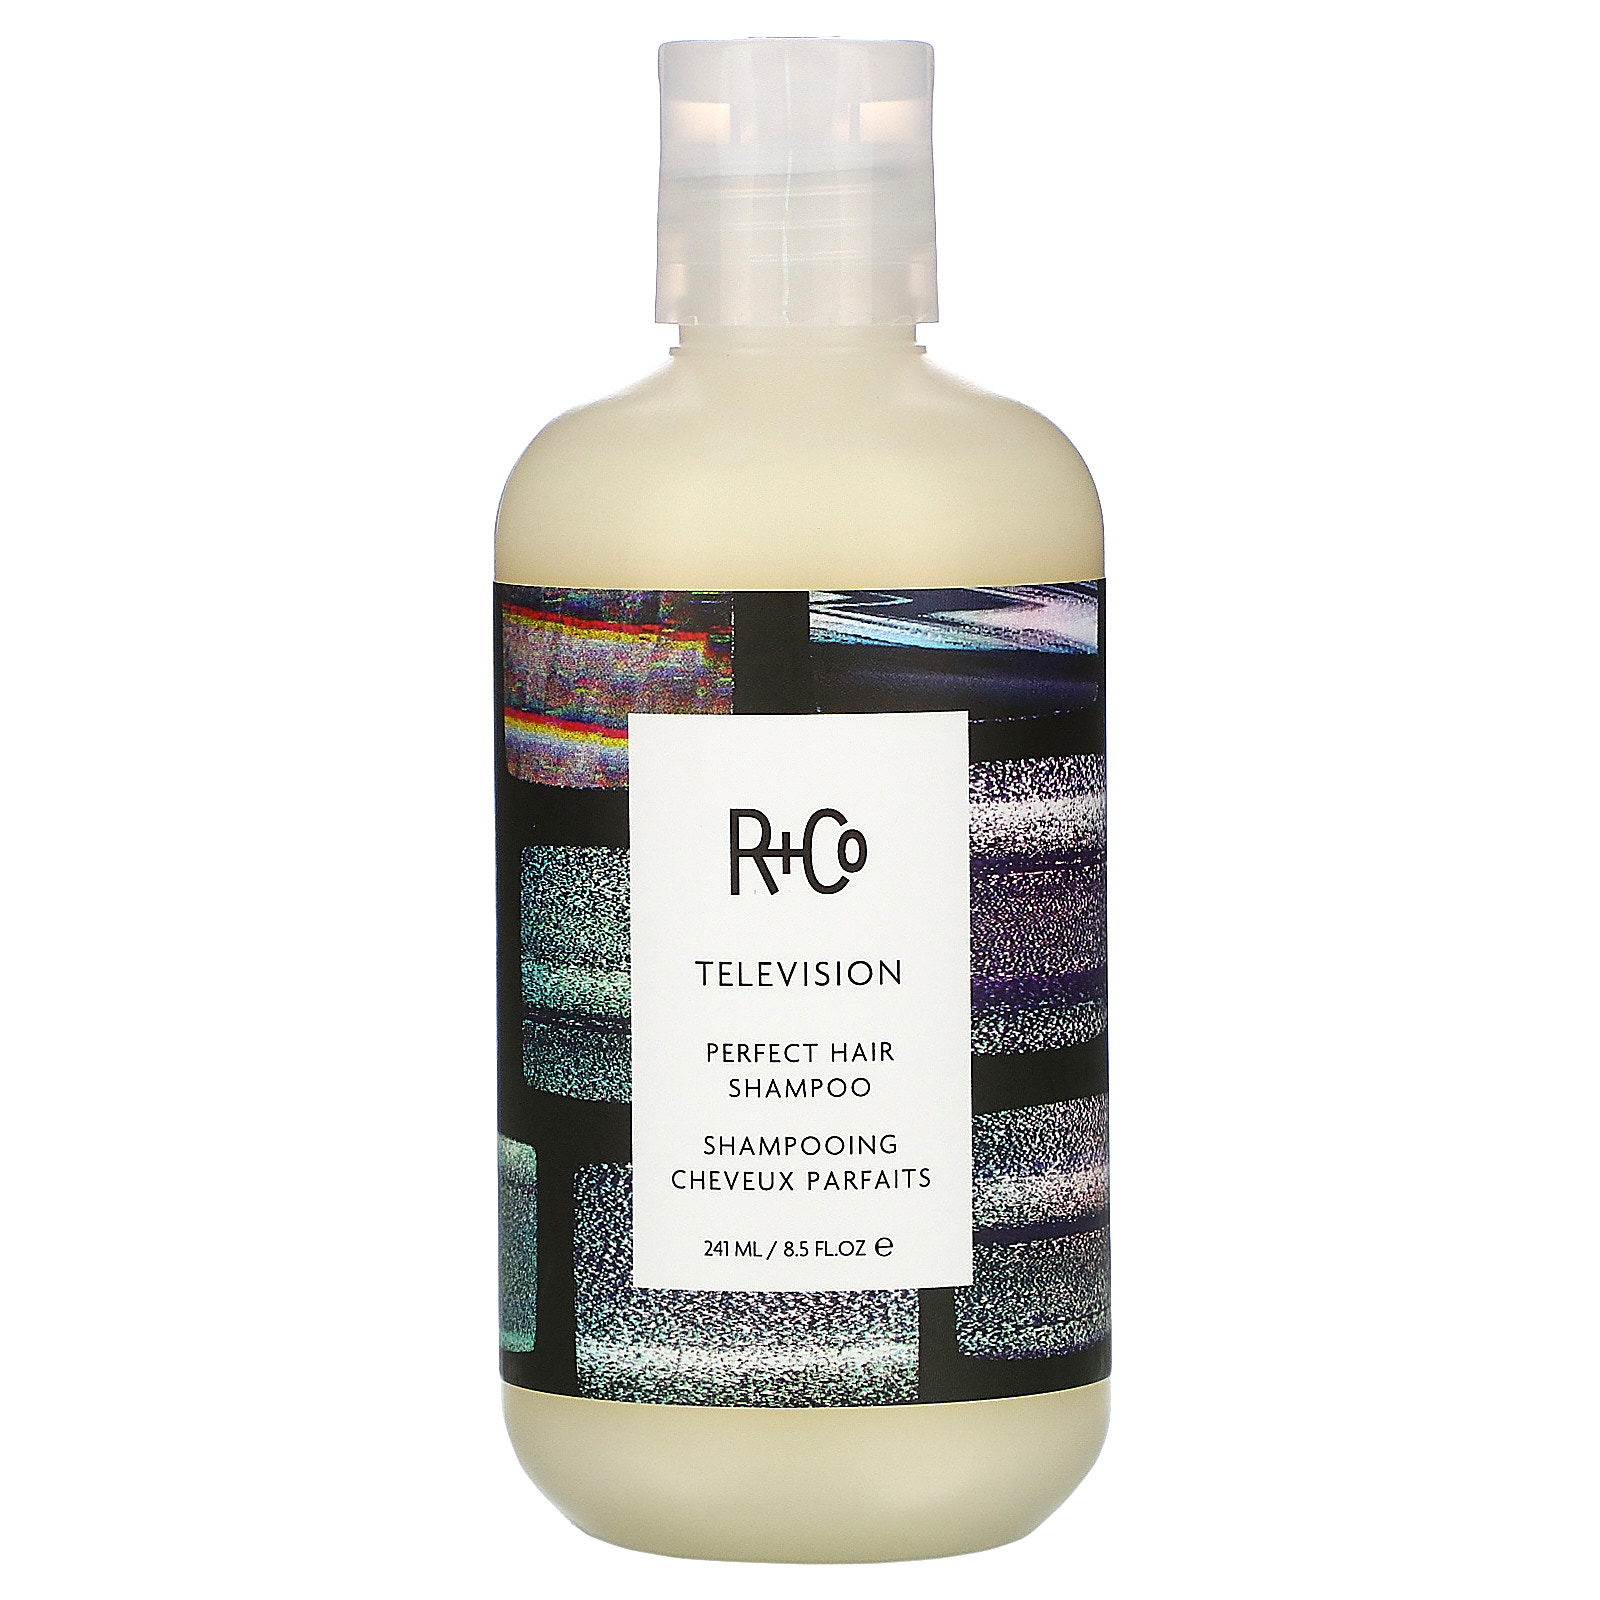 R+Co, Television, Perfect Hair Shampoo, 8.5 fl oz (241 ml)